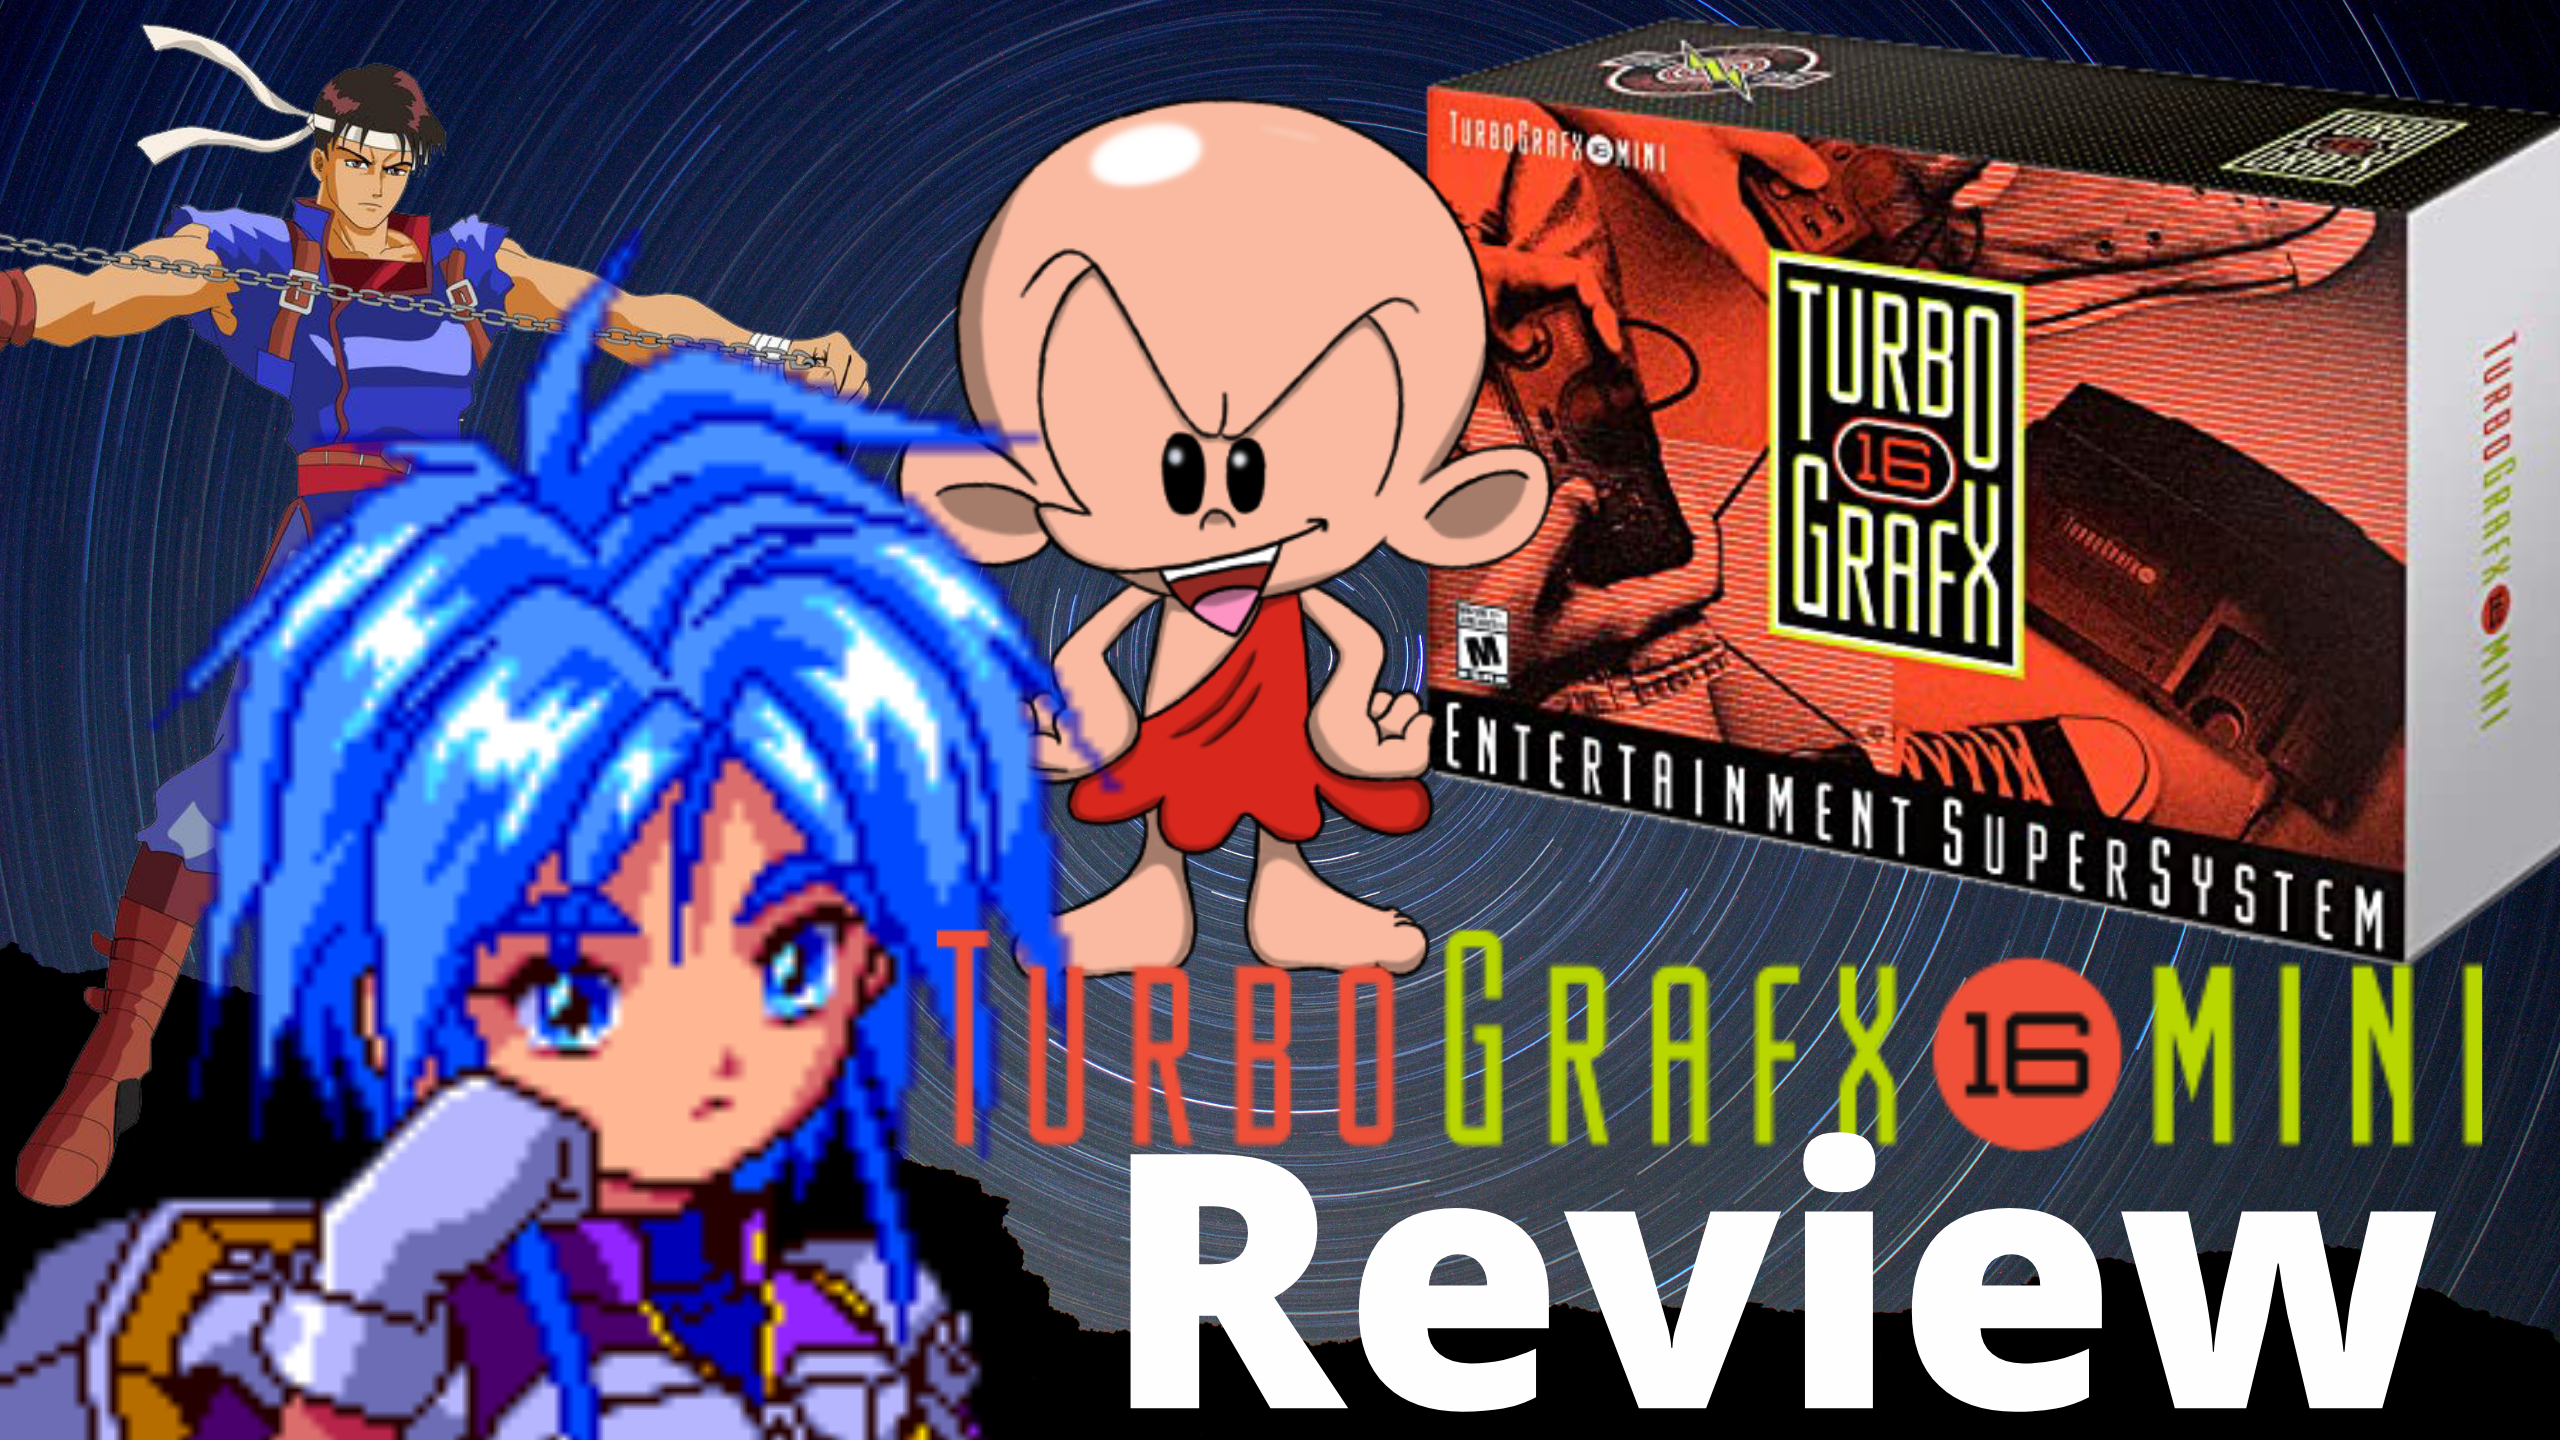 Turbografx 16 Mini Review Video is Now Live on Youtube